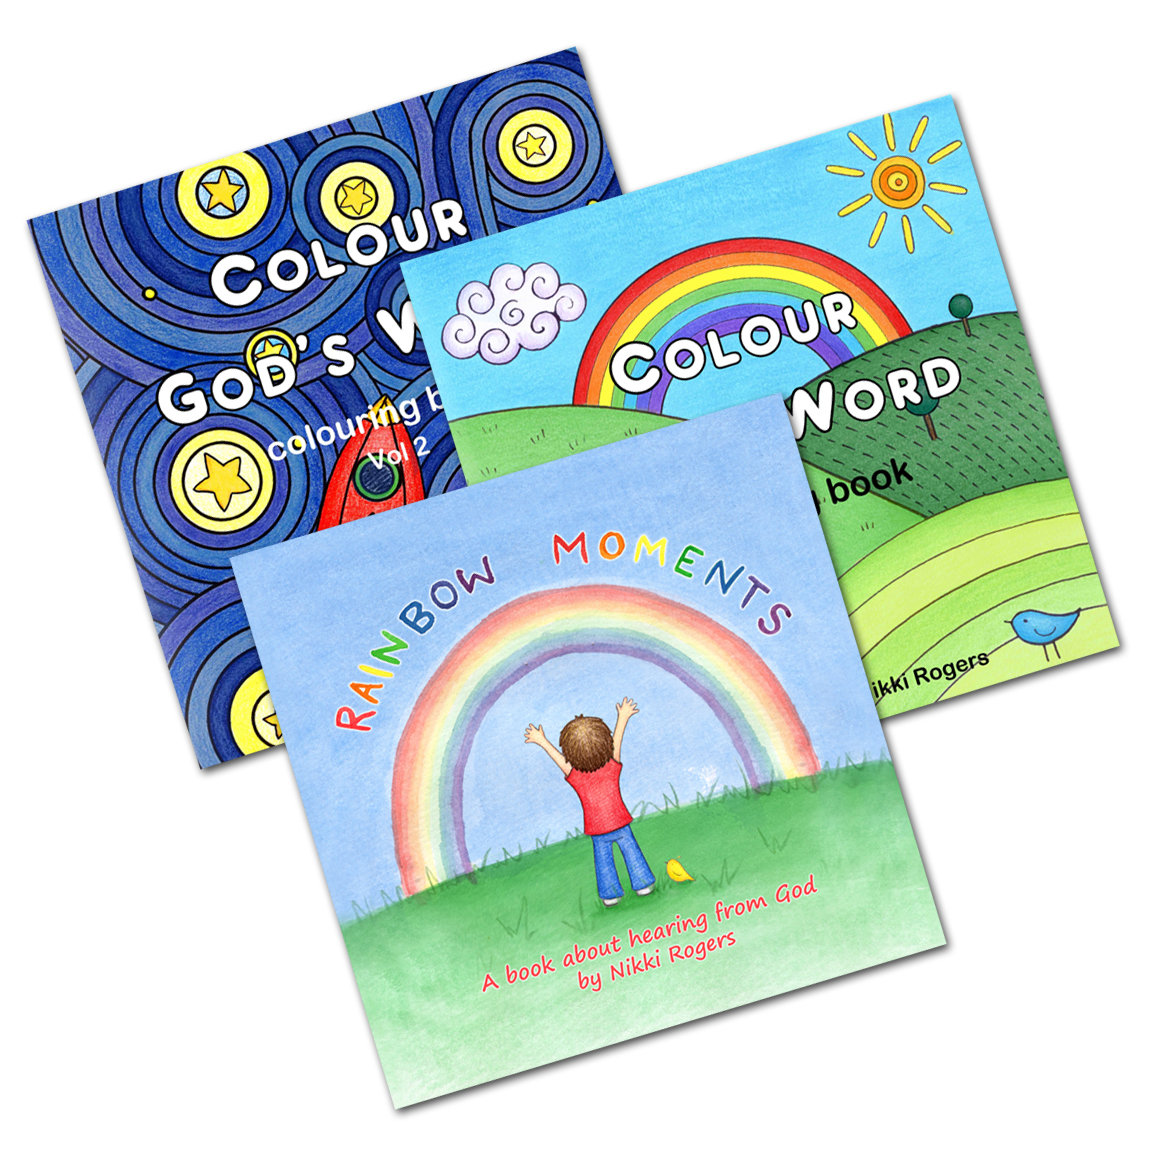 Growing with God book pack 00006